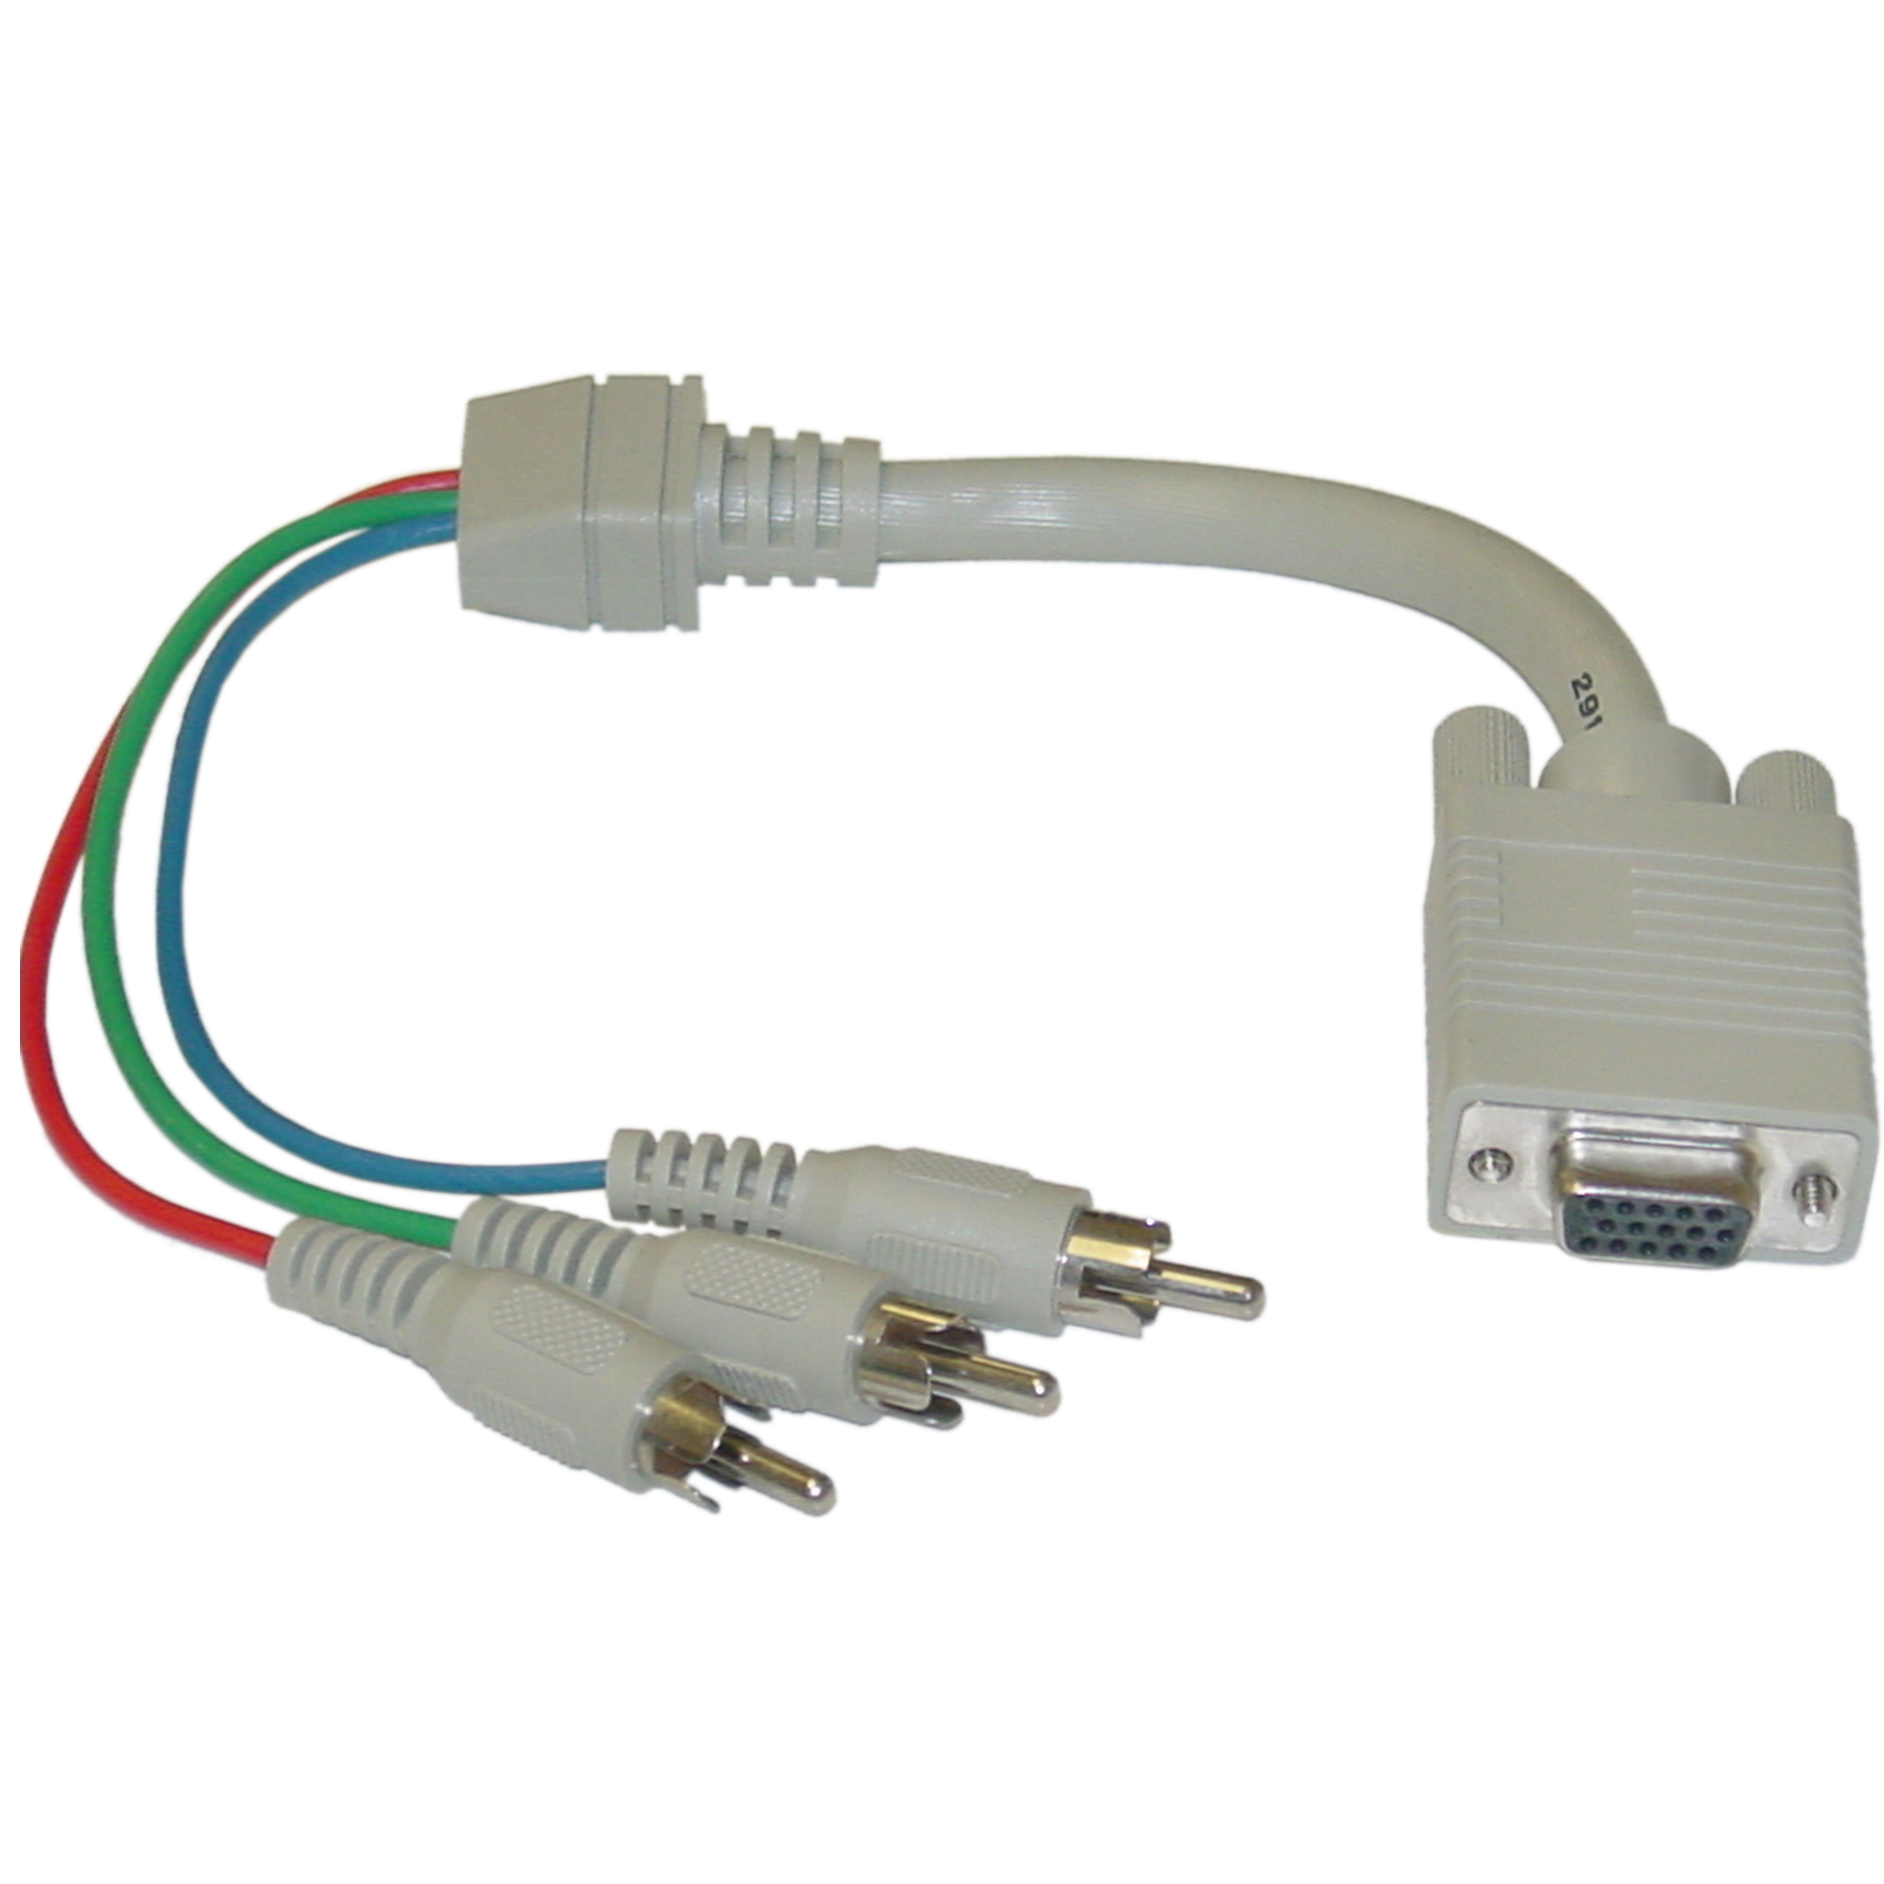 Kd 3645 Rca Cable Tv Besides Micro Usb Wiring Diagram On Wiring Diagram For